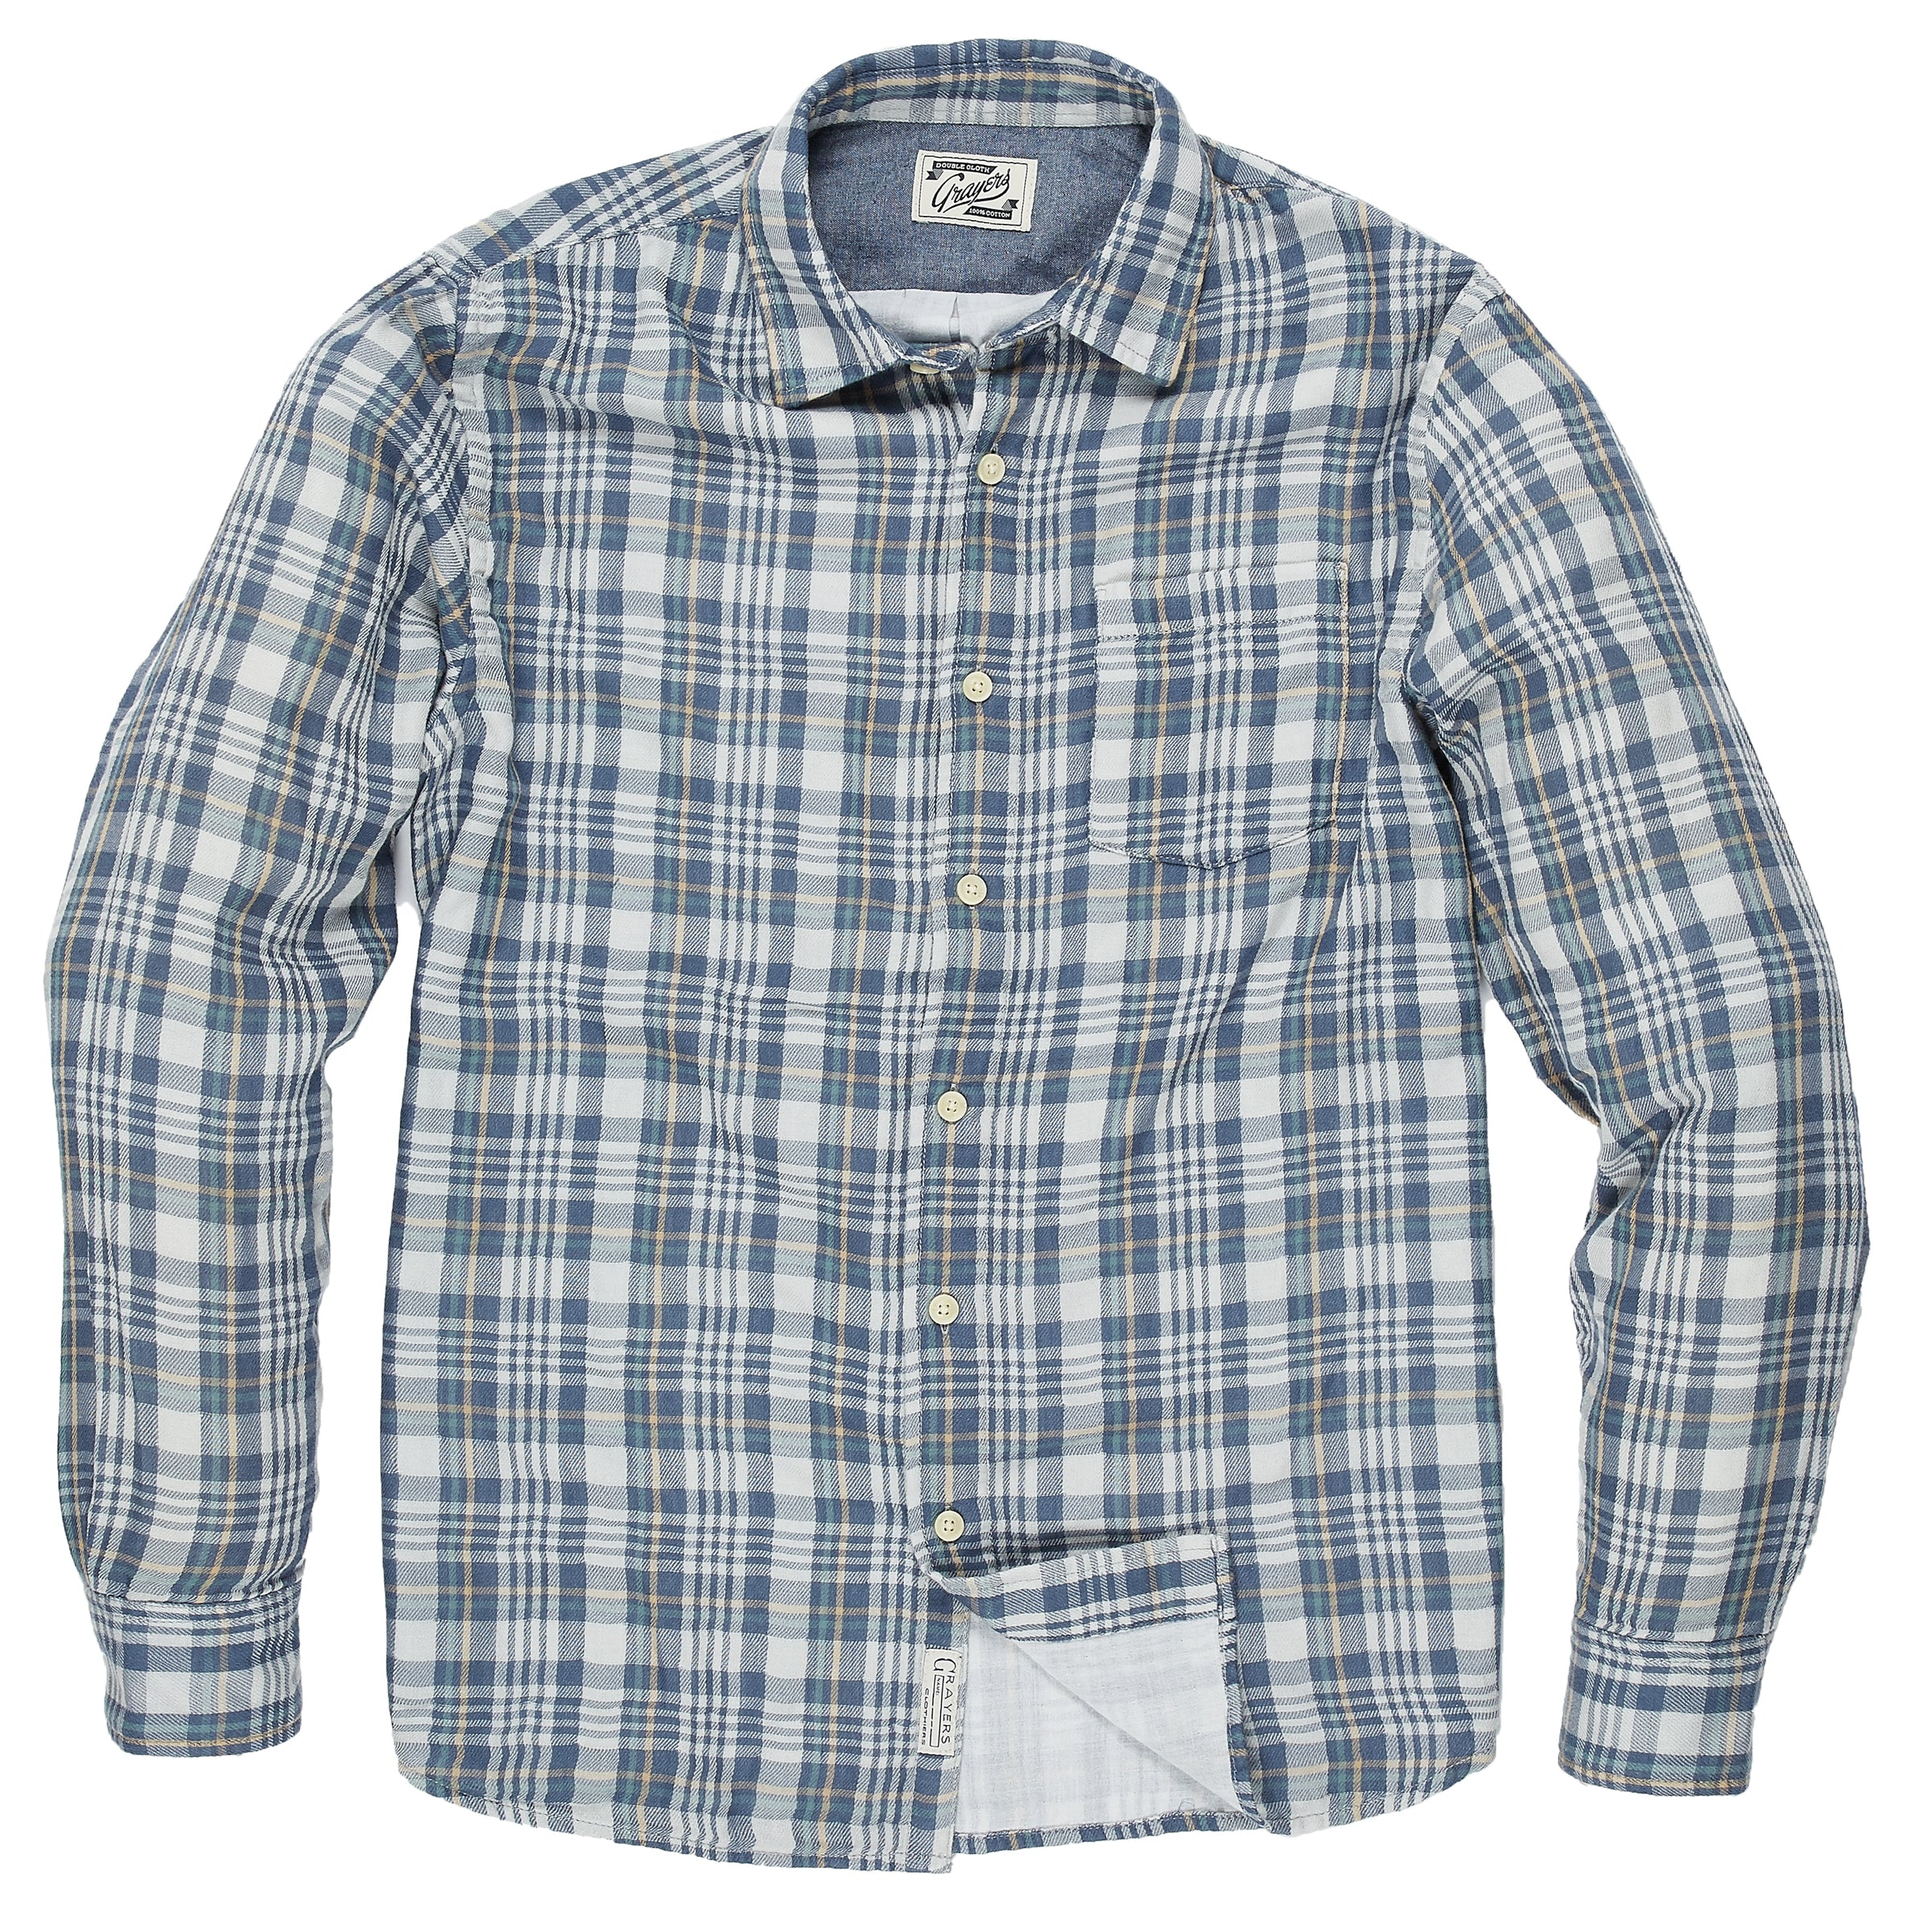 Abercorn Double Cloth Shirt - Blue Gray Plaid